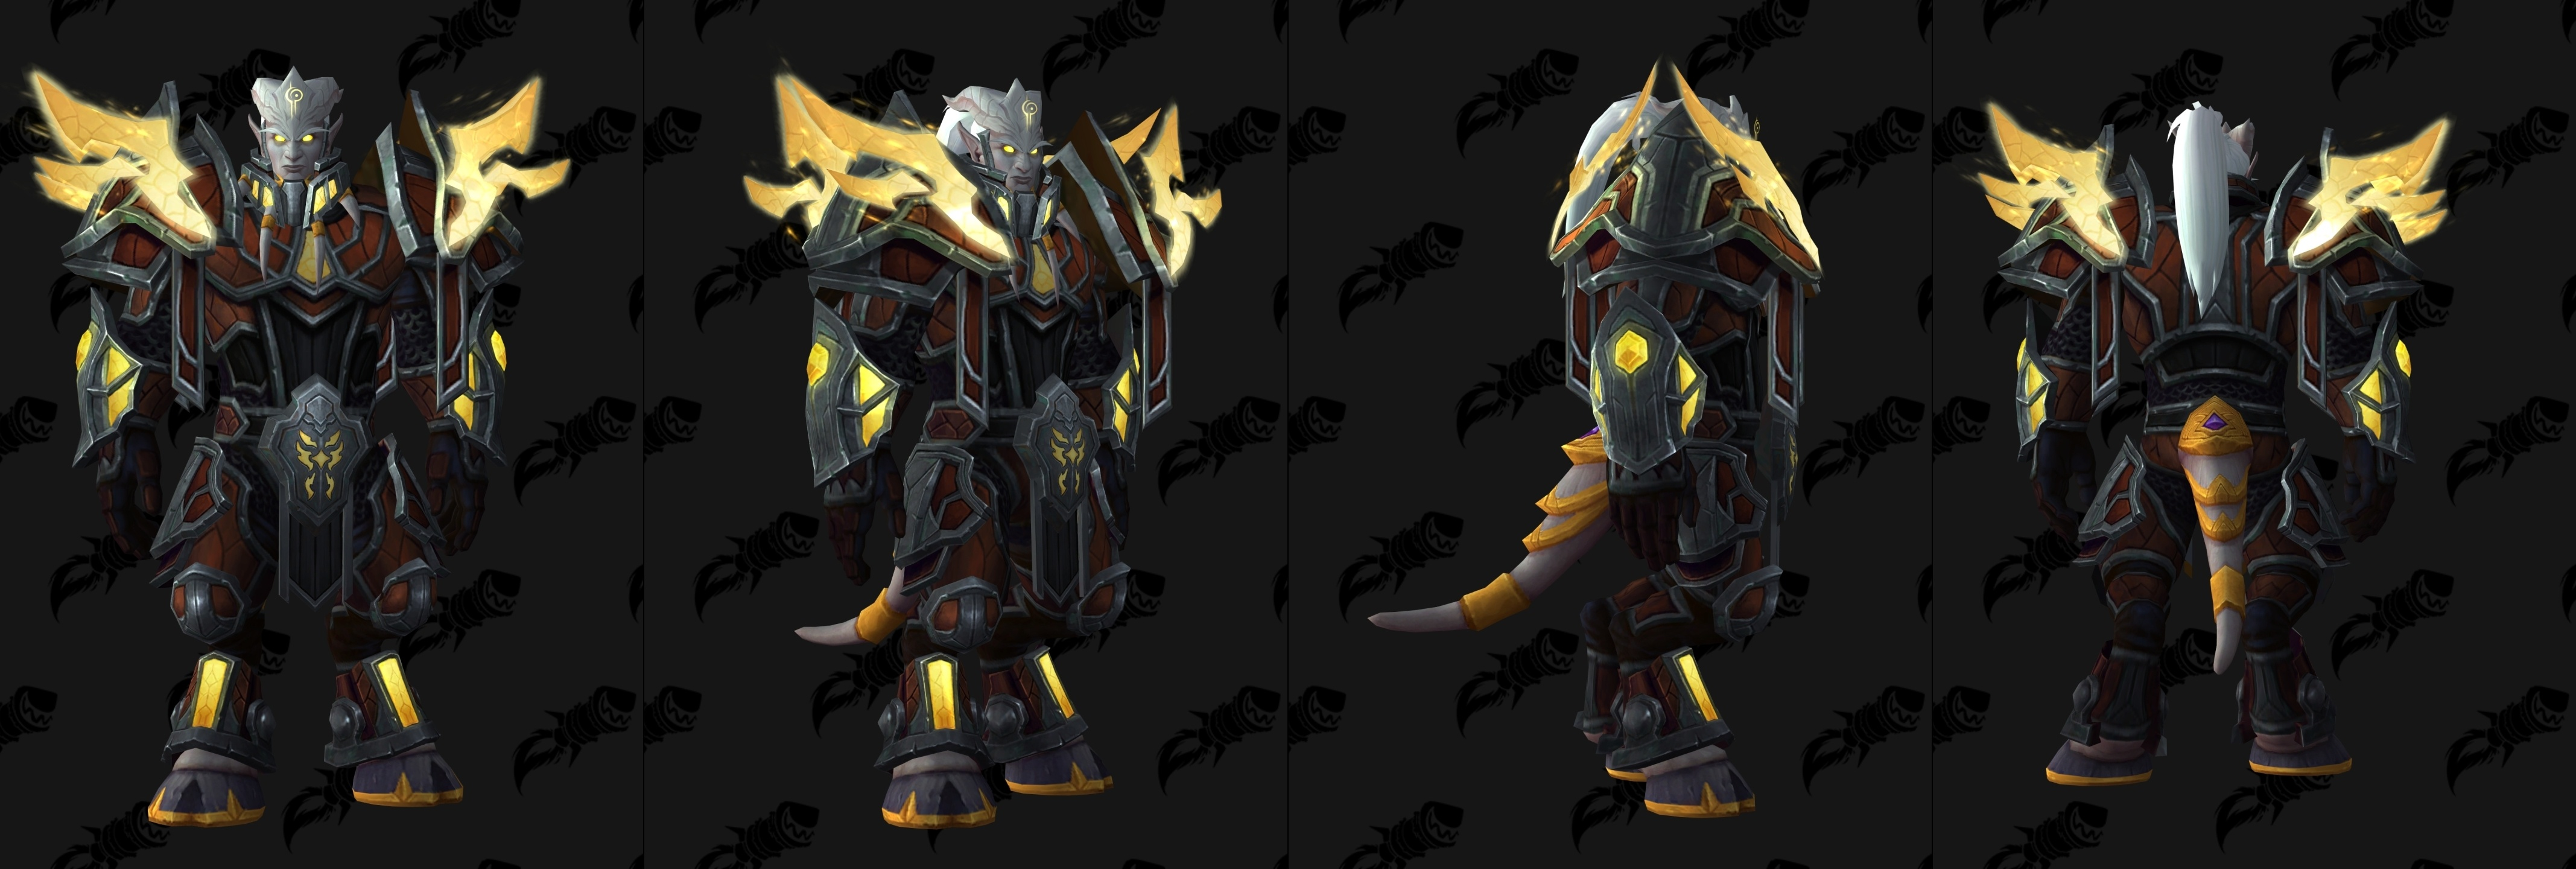 7 3 5 PTR - Heritage Armor Set Models - Wowhead News